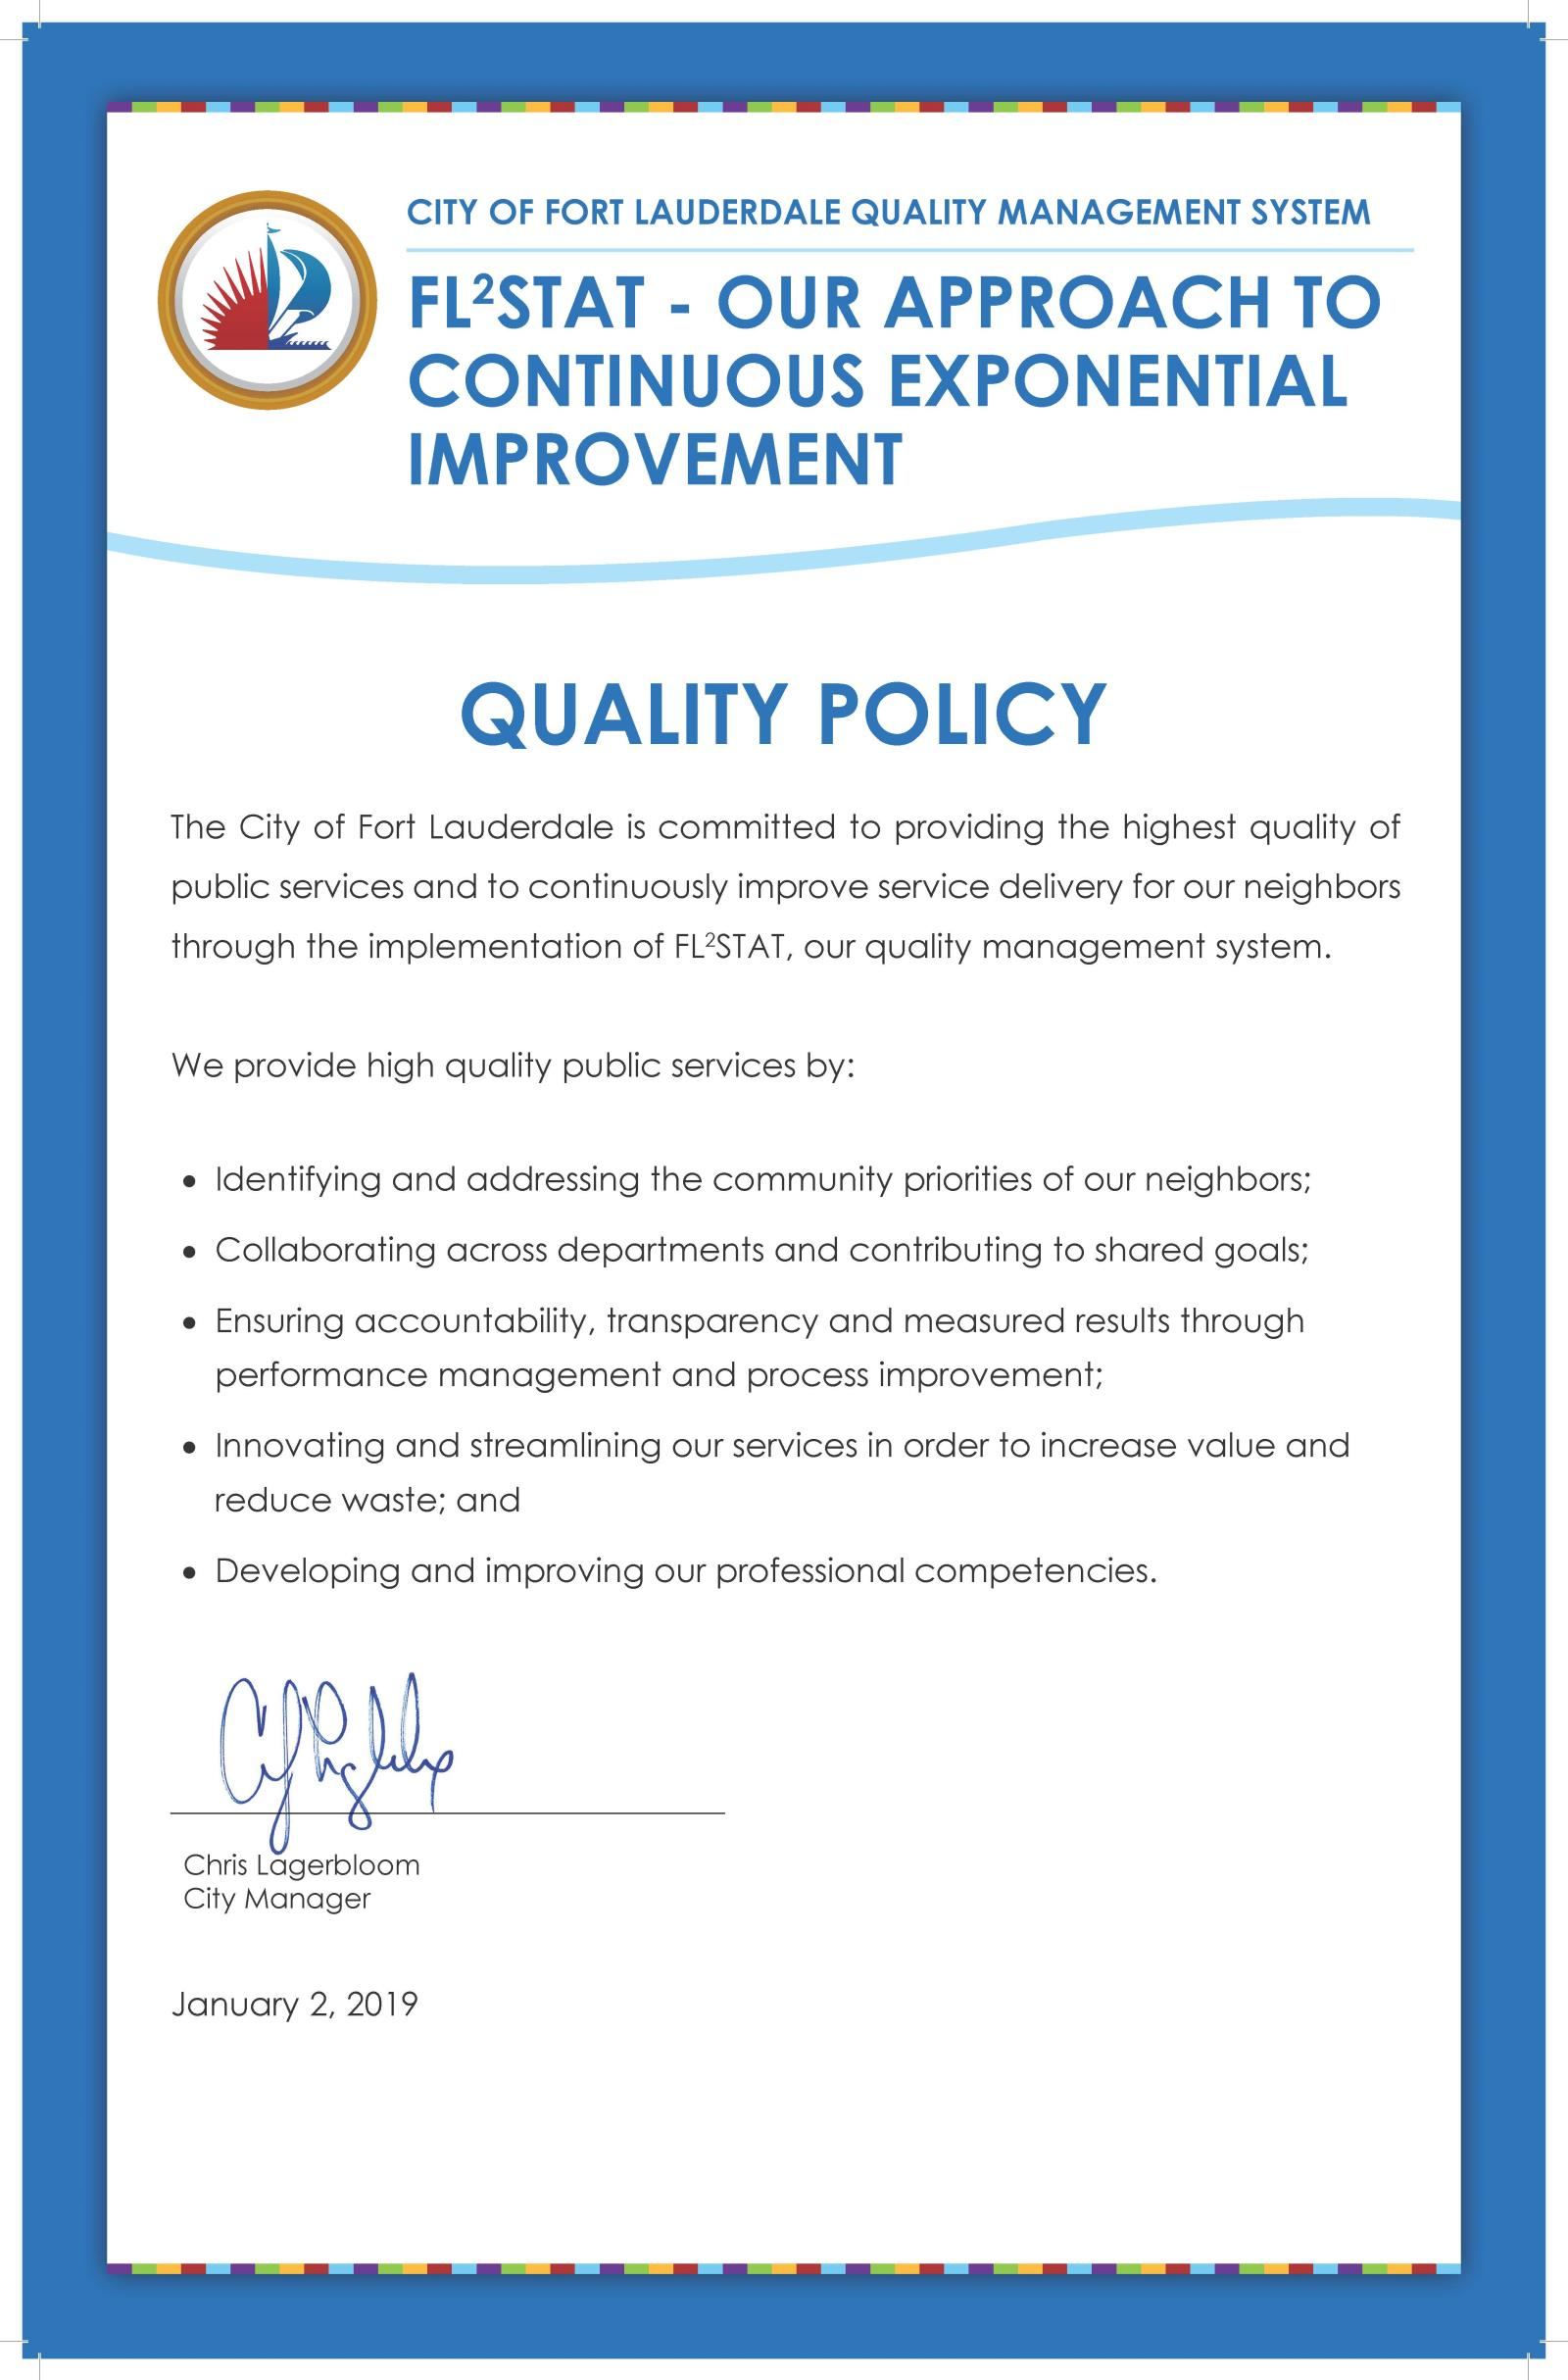 City of Fort Lauderdale, FL : Quality Management System